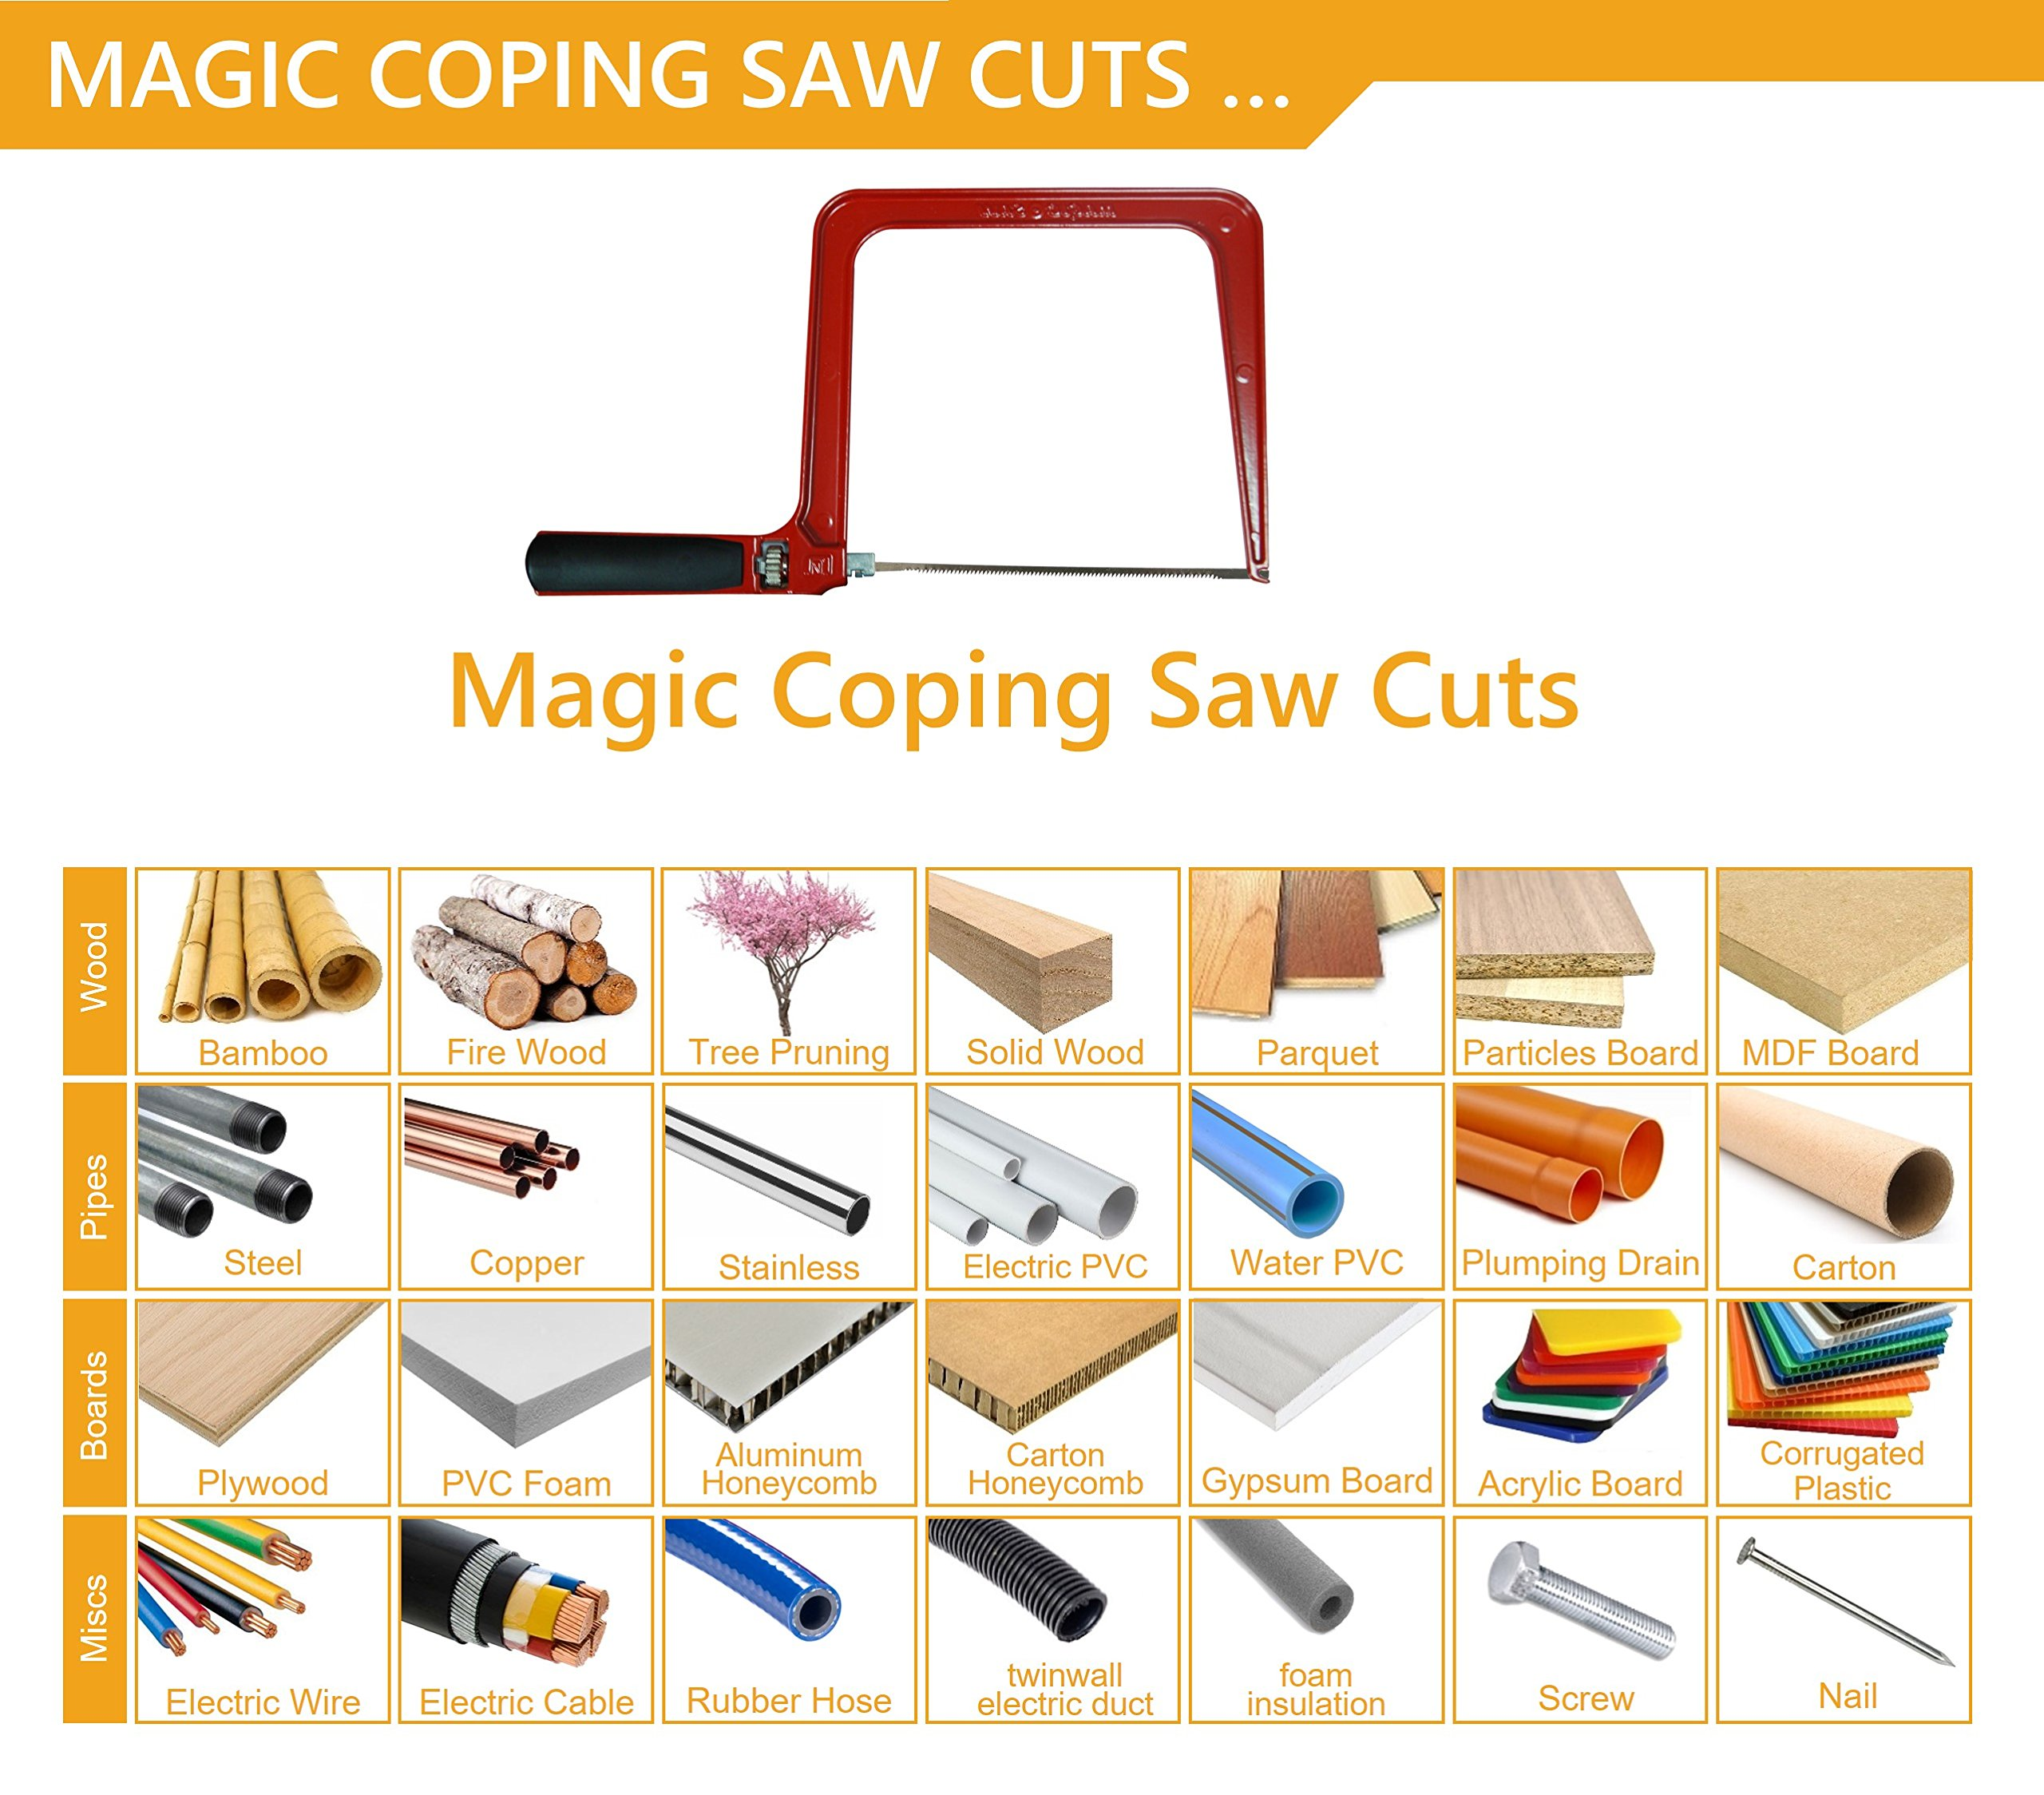 Original Magic Coping Saw with 6 inch High Carbon Steel Pins Blades, a Heavy Duty H shape Metal Frame Works as Fret Saw, Hacksaw, and Pruning Saw & Suitable to Cut Wood, Plastic, PVC, Aluminum, Nails by Amazing Tools (Image #5)